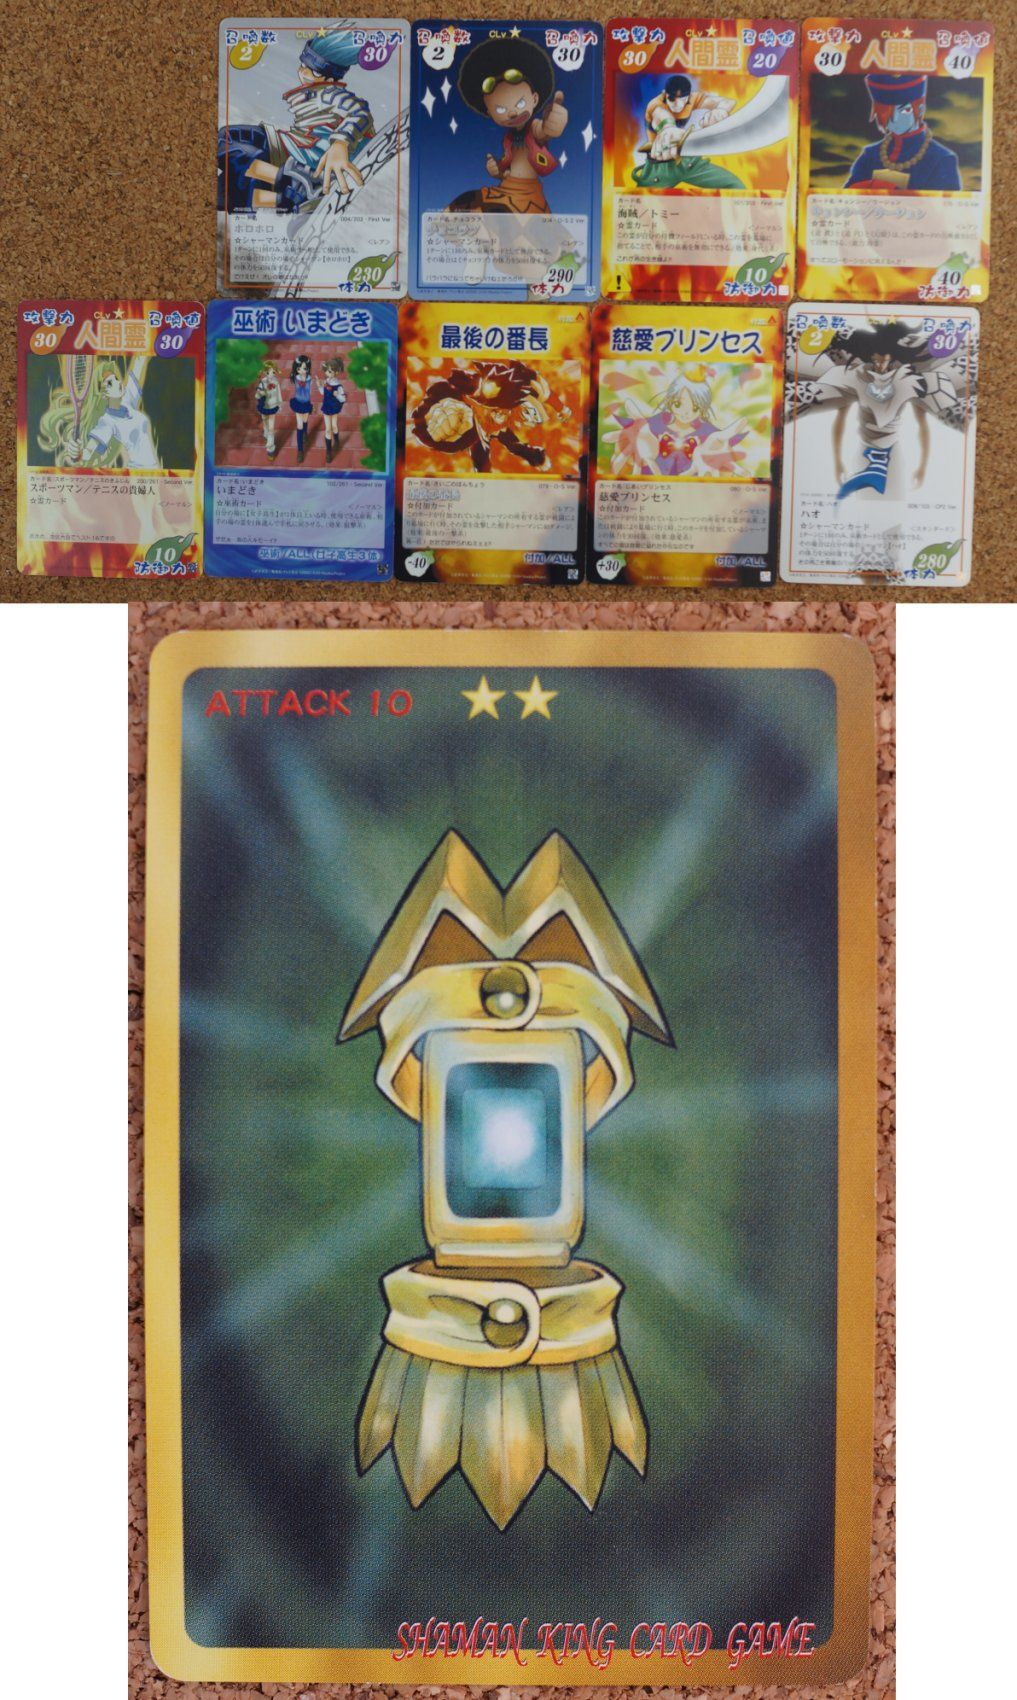 Shaman King Card Game : 9 Japanese Trading Cards http://www.japanstuff.biz/ CLICK THE FOLLOWING LINK TO BUY IT ( IF STILL AVAILABLE ) http://www.delcampe.net/page/item/id,0365321863,language,E.html